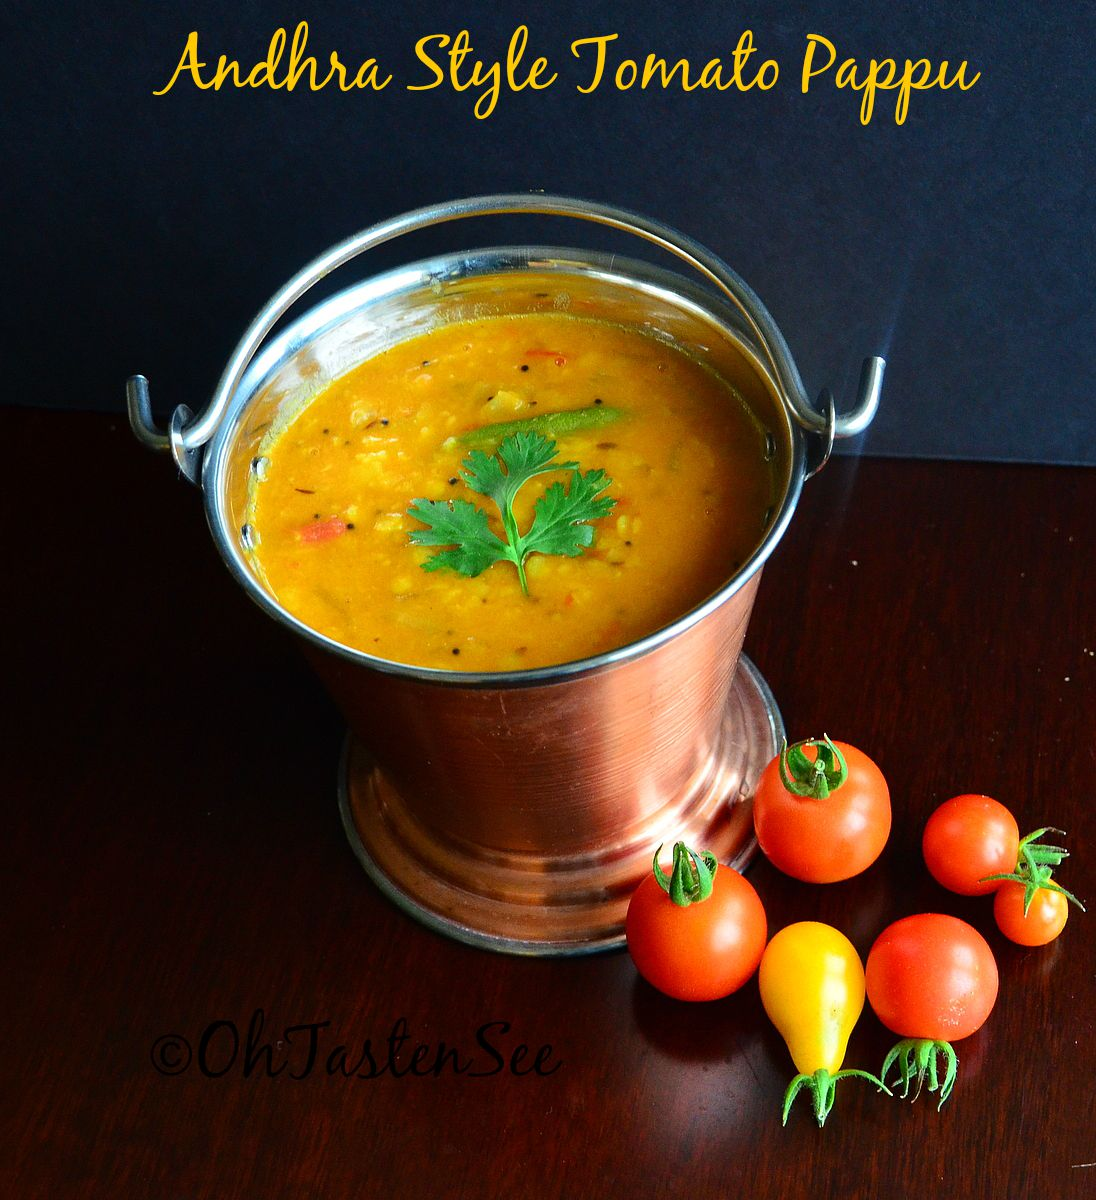 Instant Pot Tomato Pappu/Andhra style tomato dal in Instant